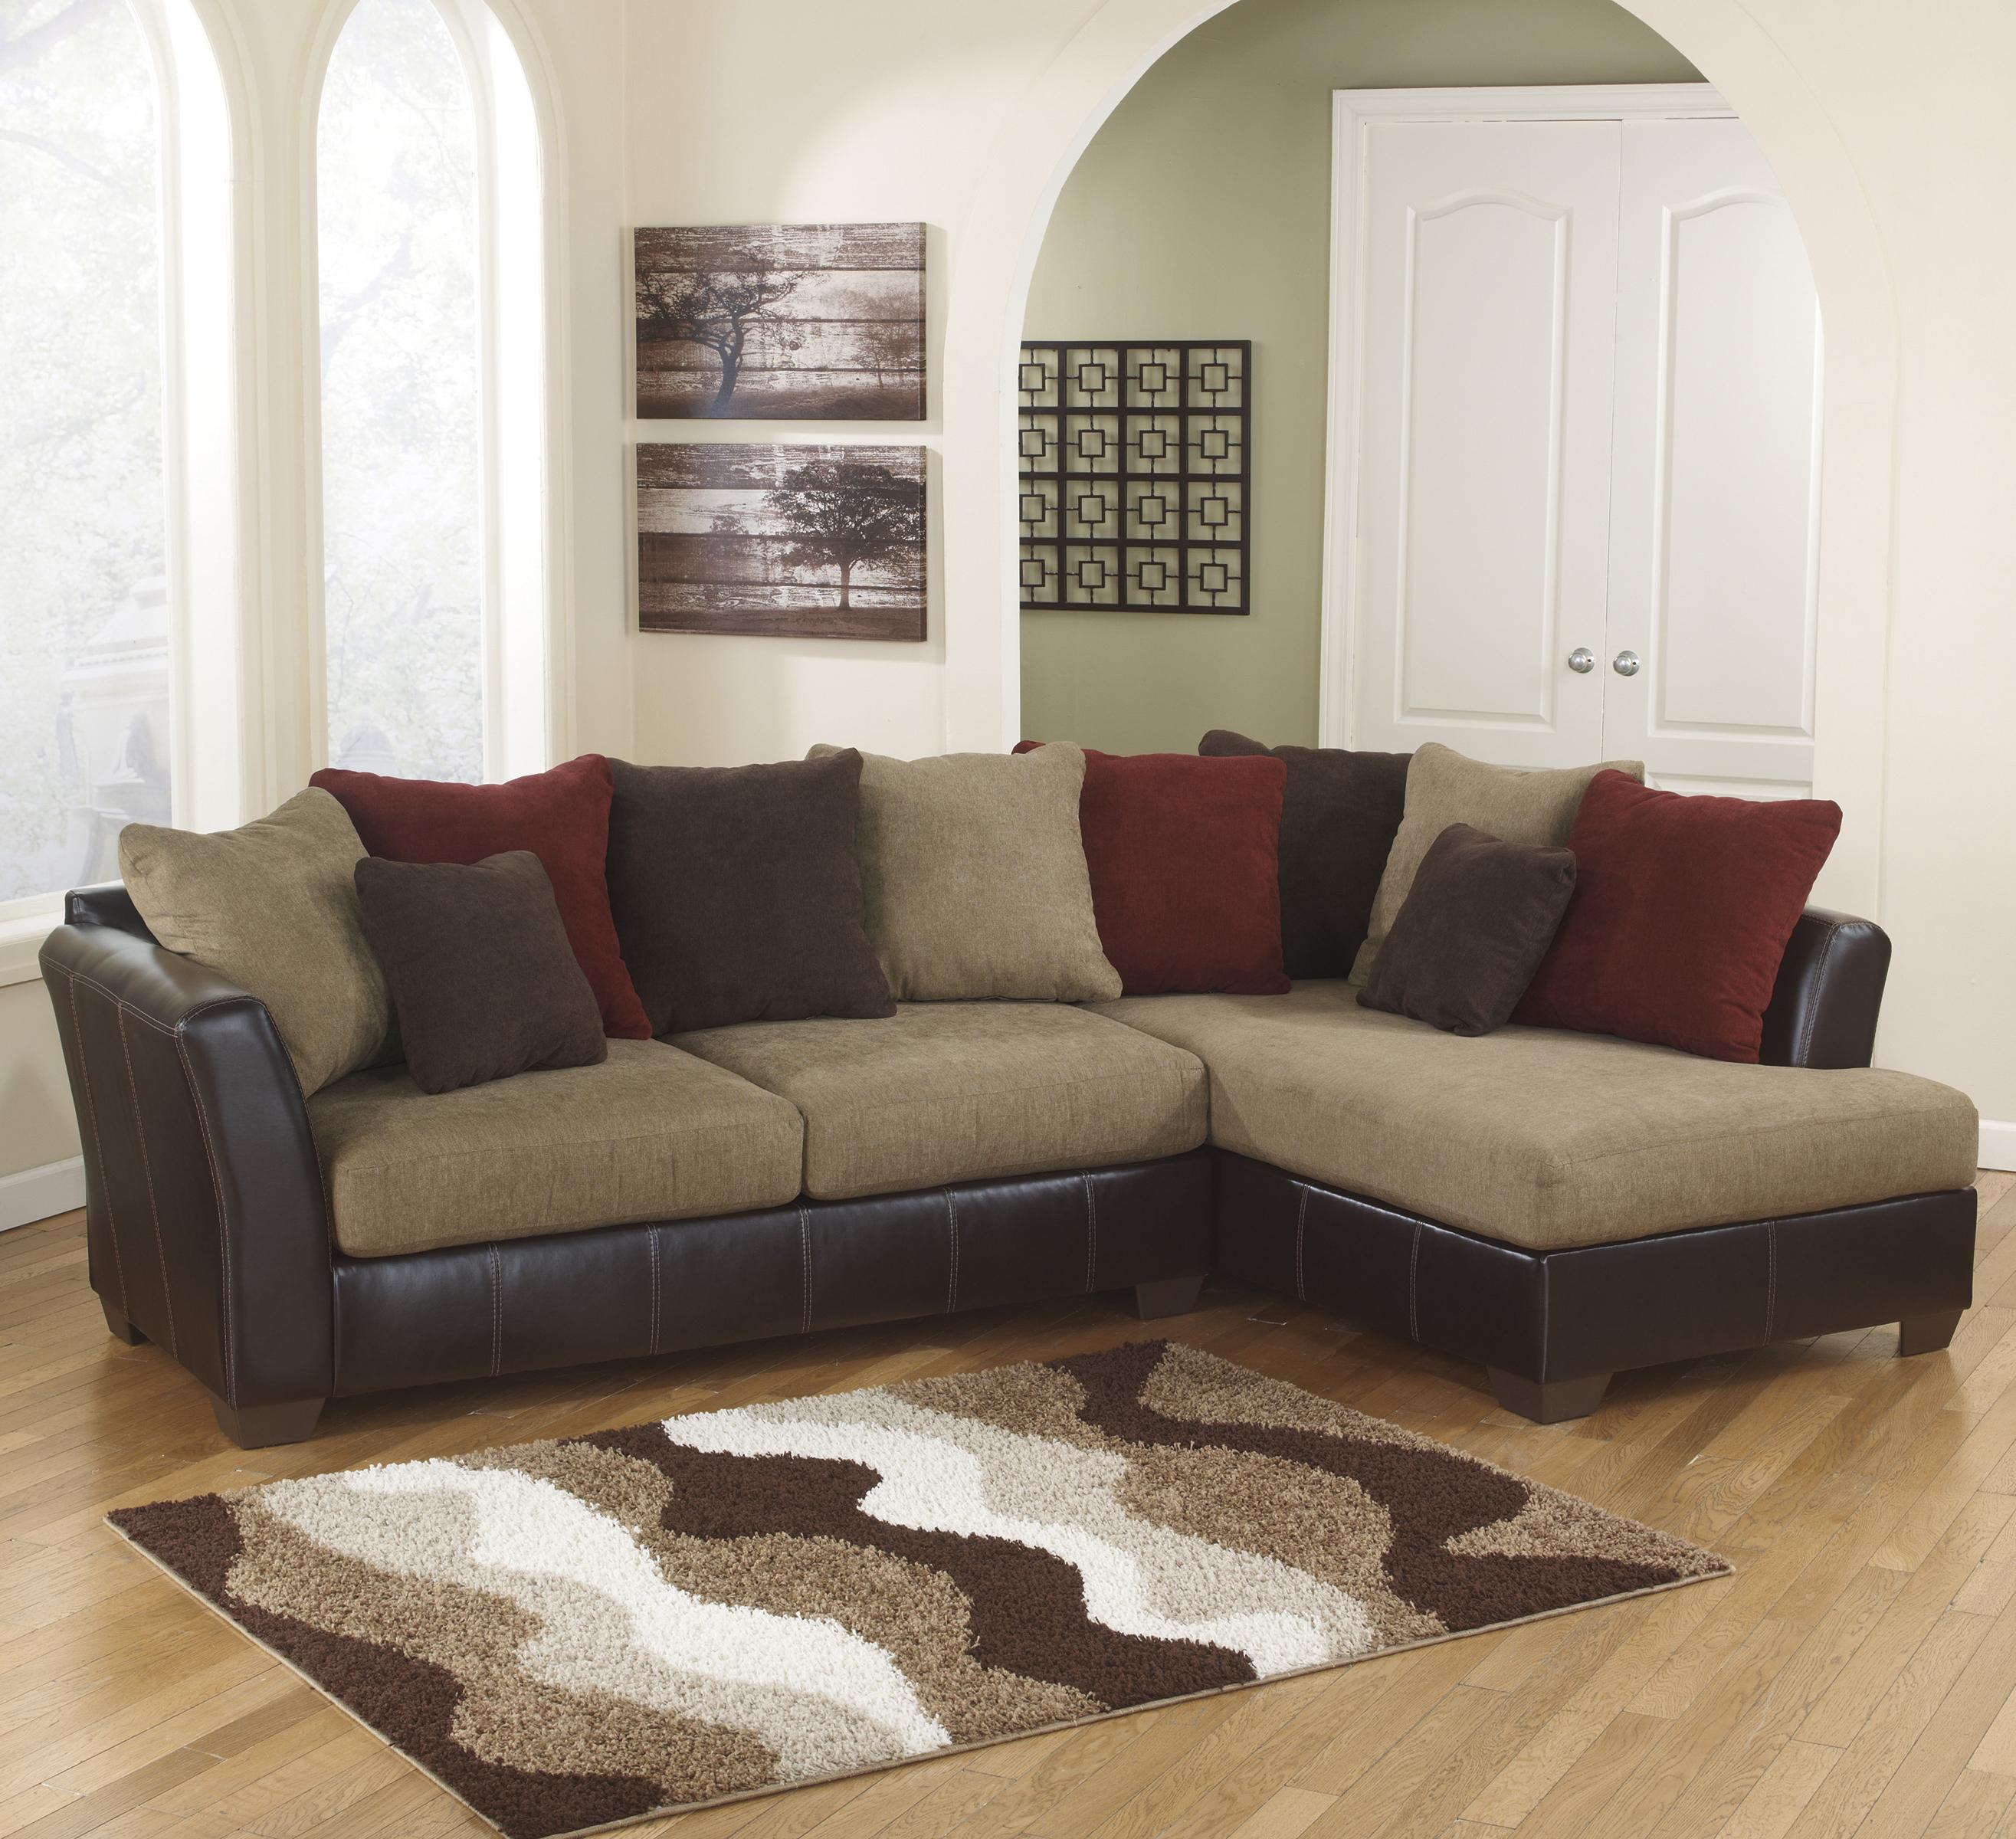 Ashley Furniture Sanya - Mocha 2-Piece Sectional with Right Chaise - Item Number: 2840066+17